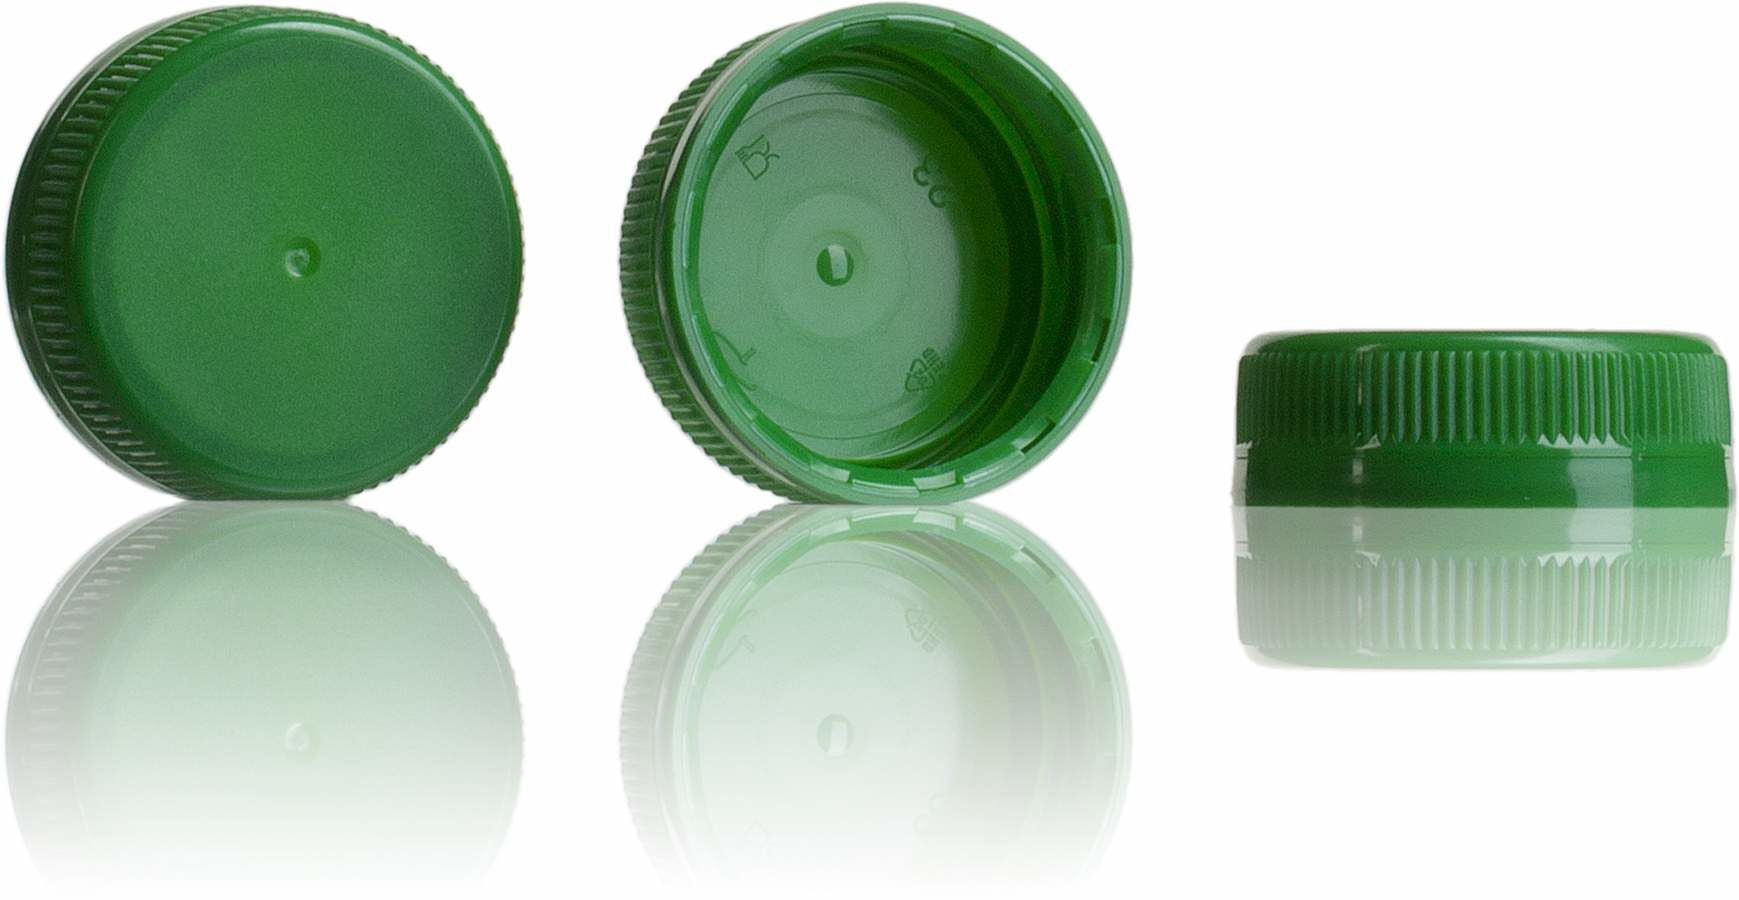 Stopper Green 38 mm 38 33 3 threads MetaIMGIn Tapones